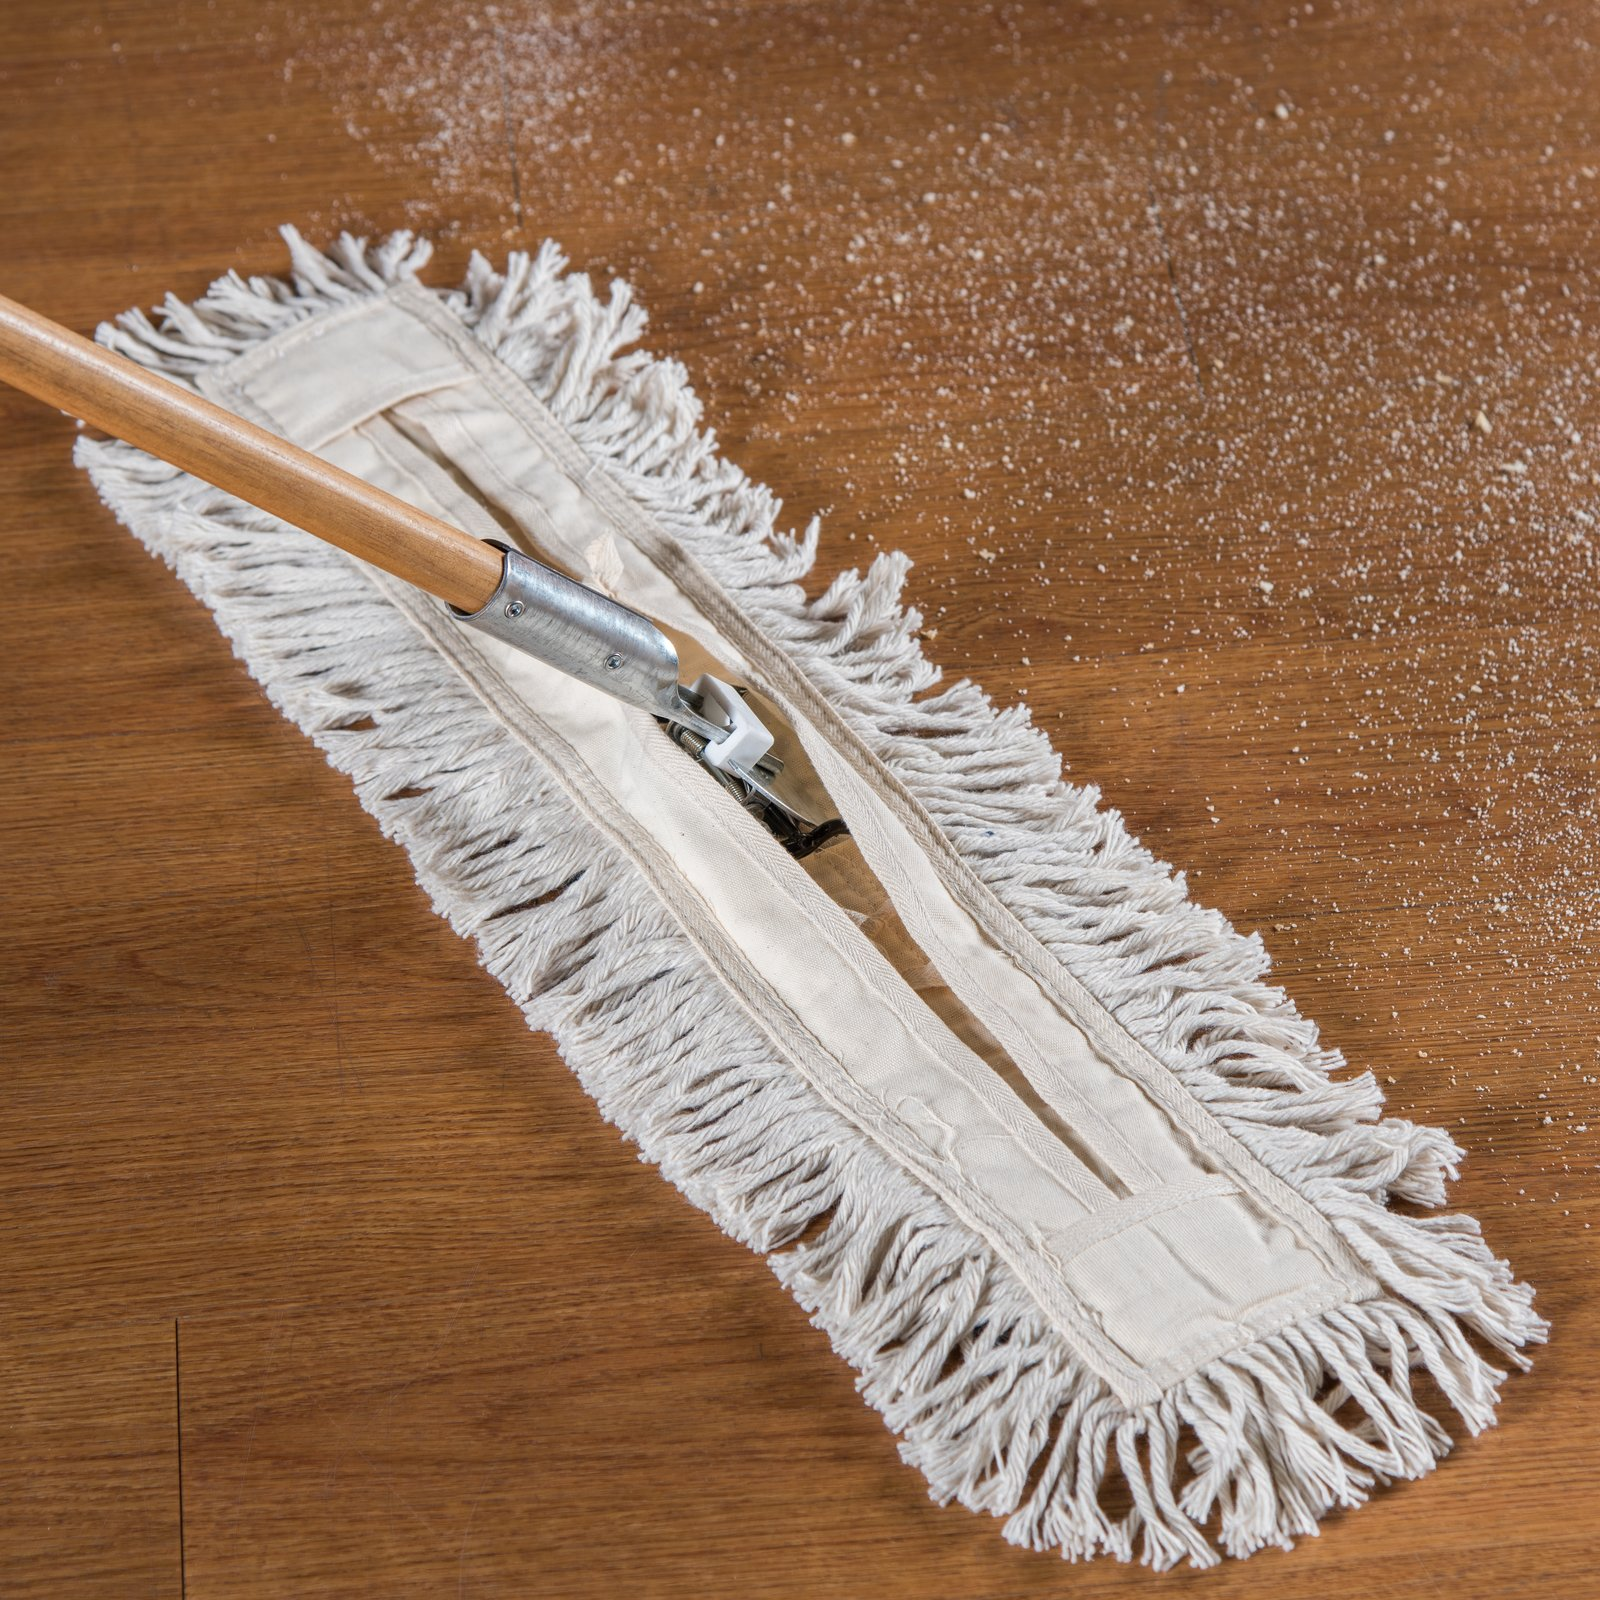 364732400 Flo Pac Tie Back Dust Mop 24 X 3 Natural Carlisle Foodservice Products